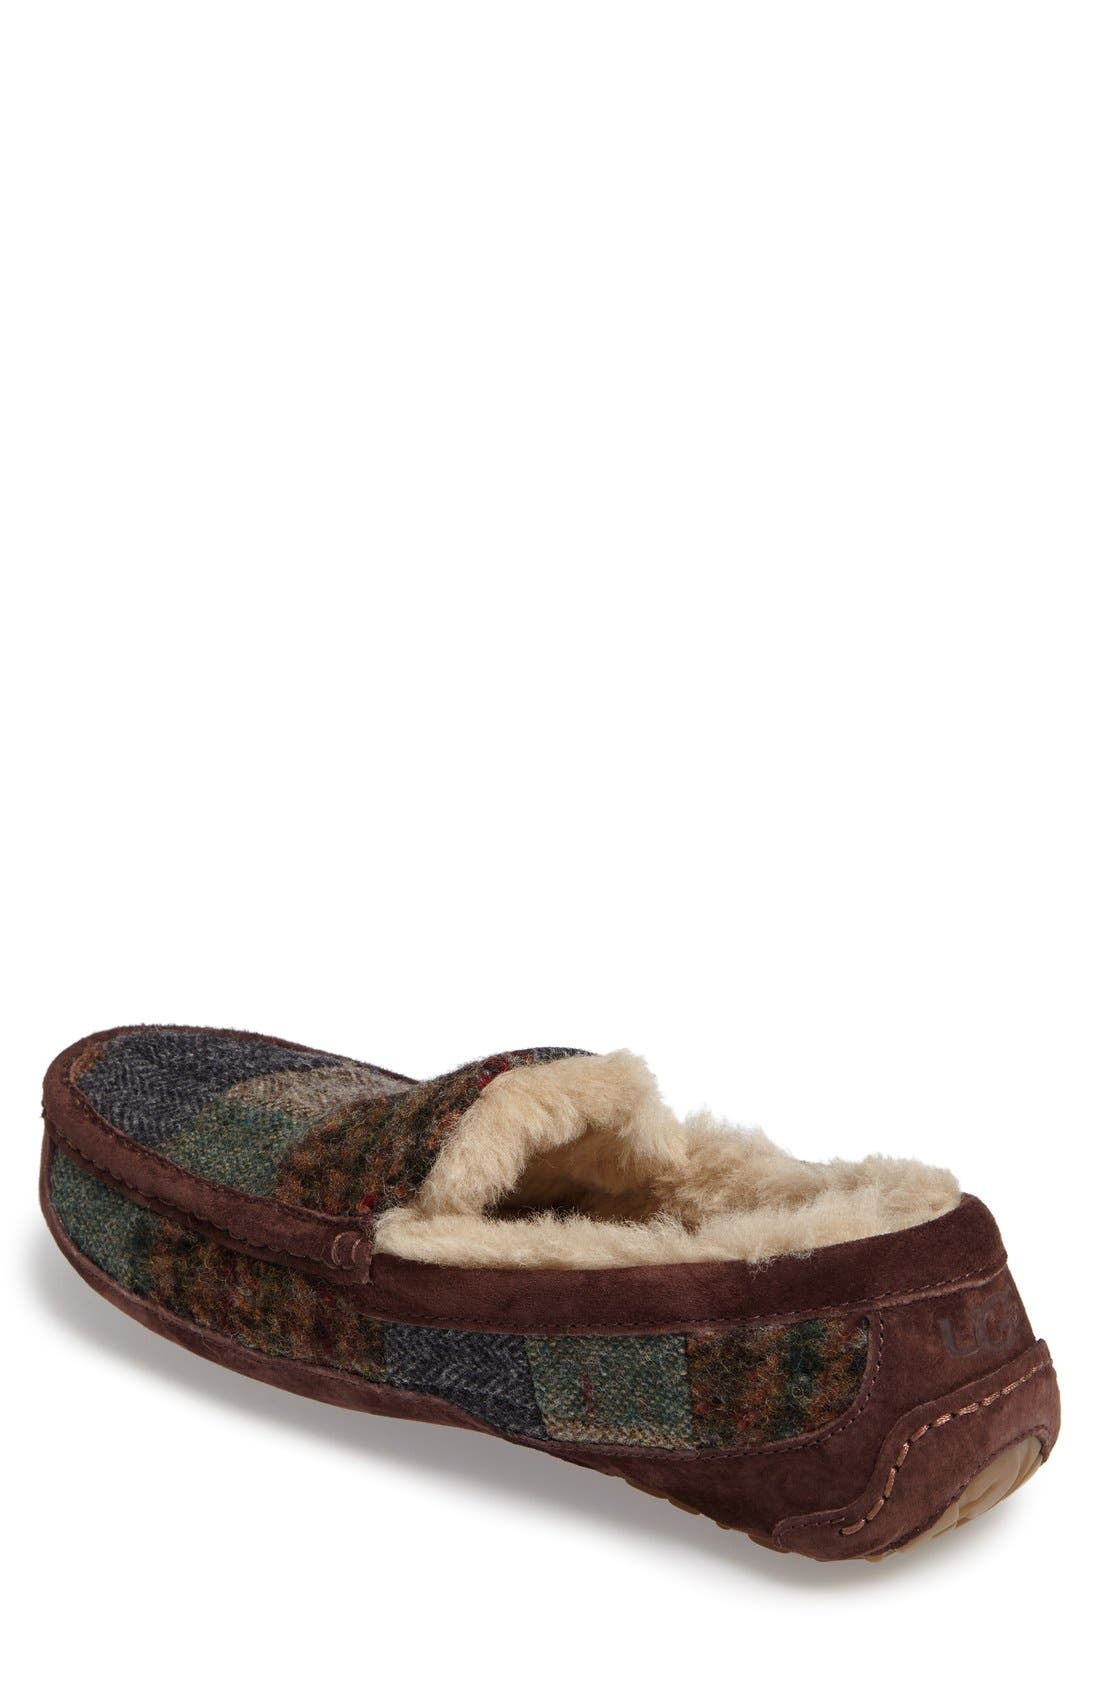 Alternate Image 2  - UGG® Ascot UGGpure Slipper (Men)